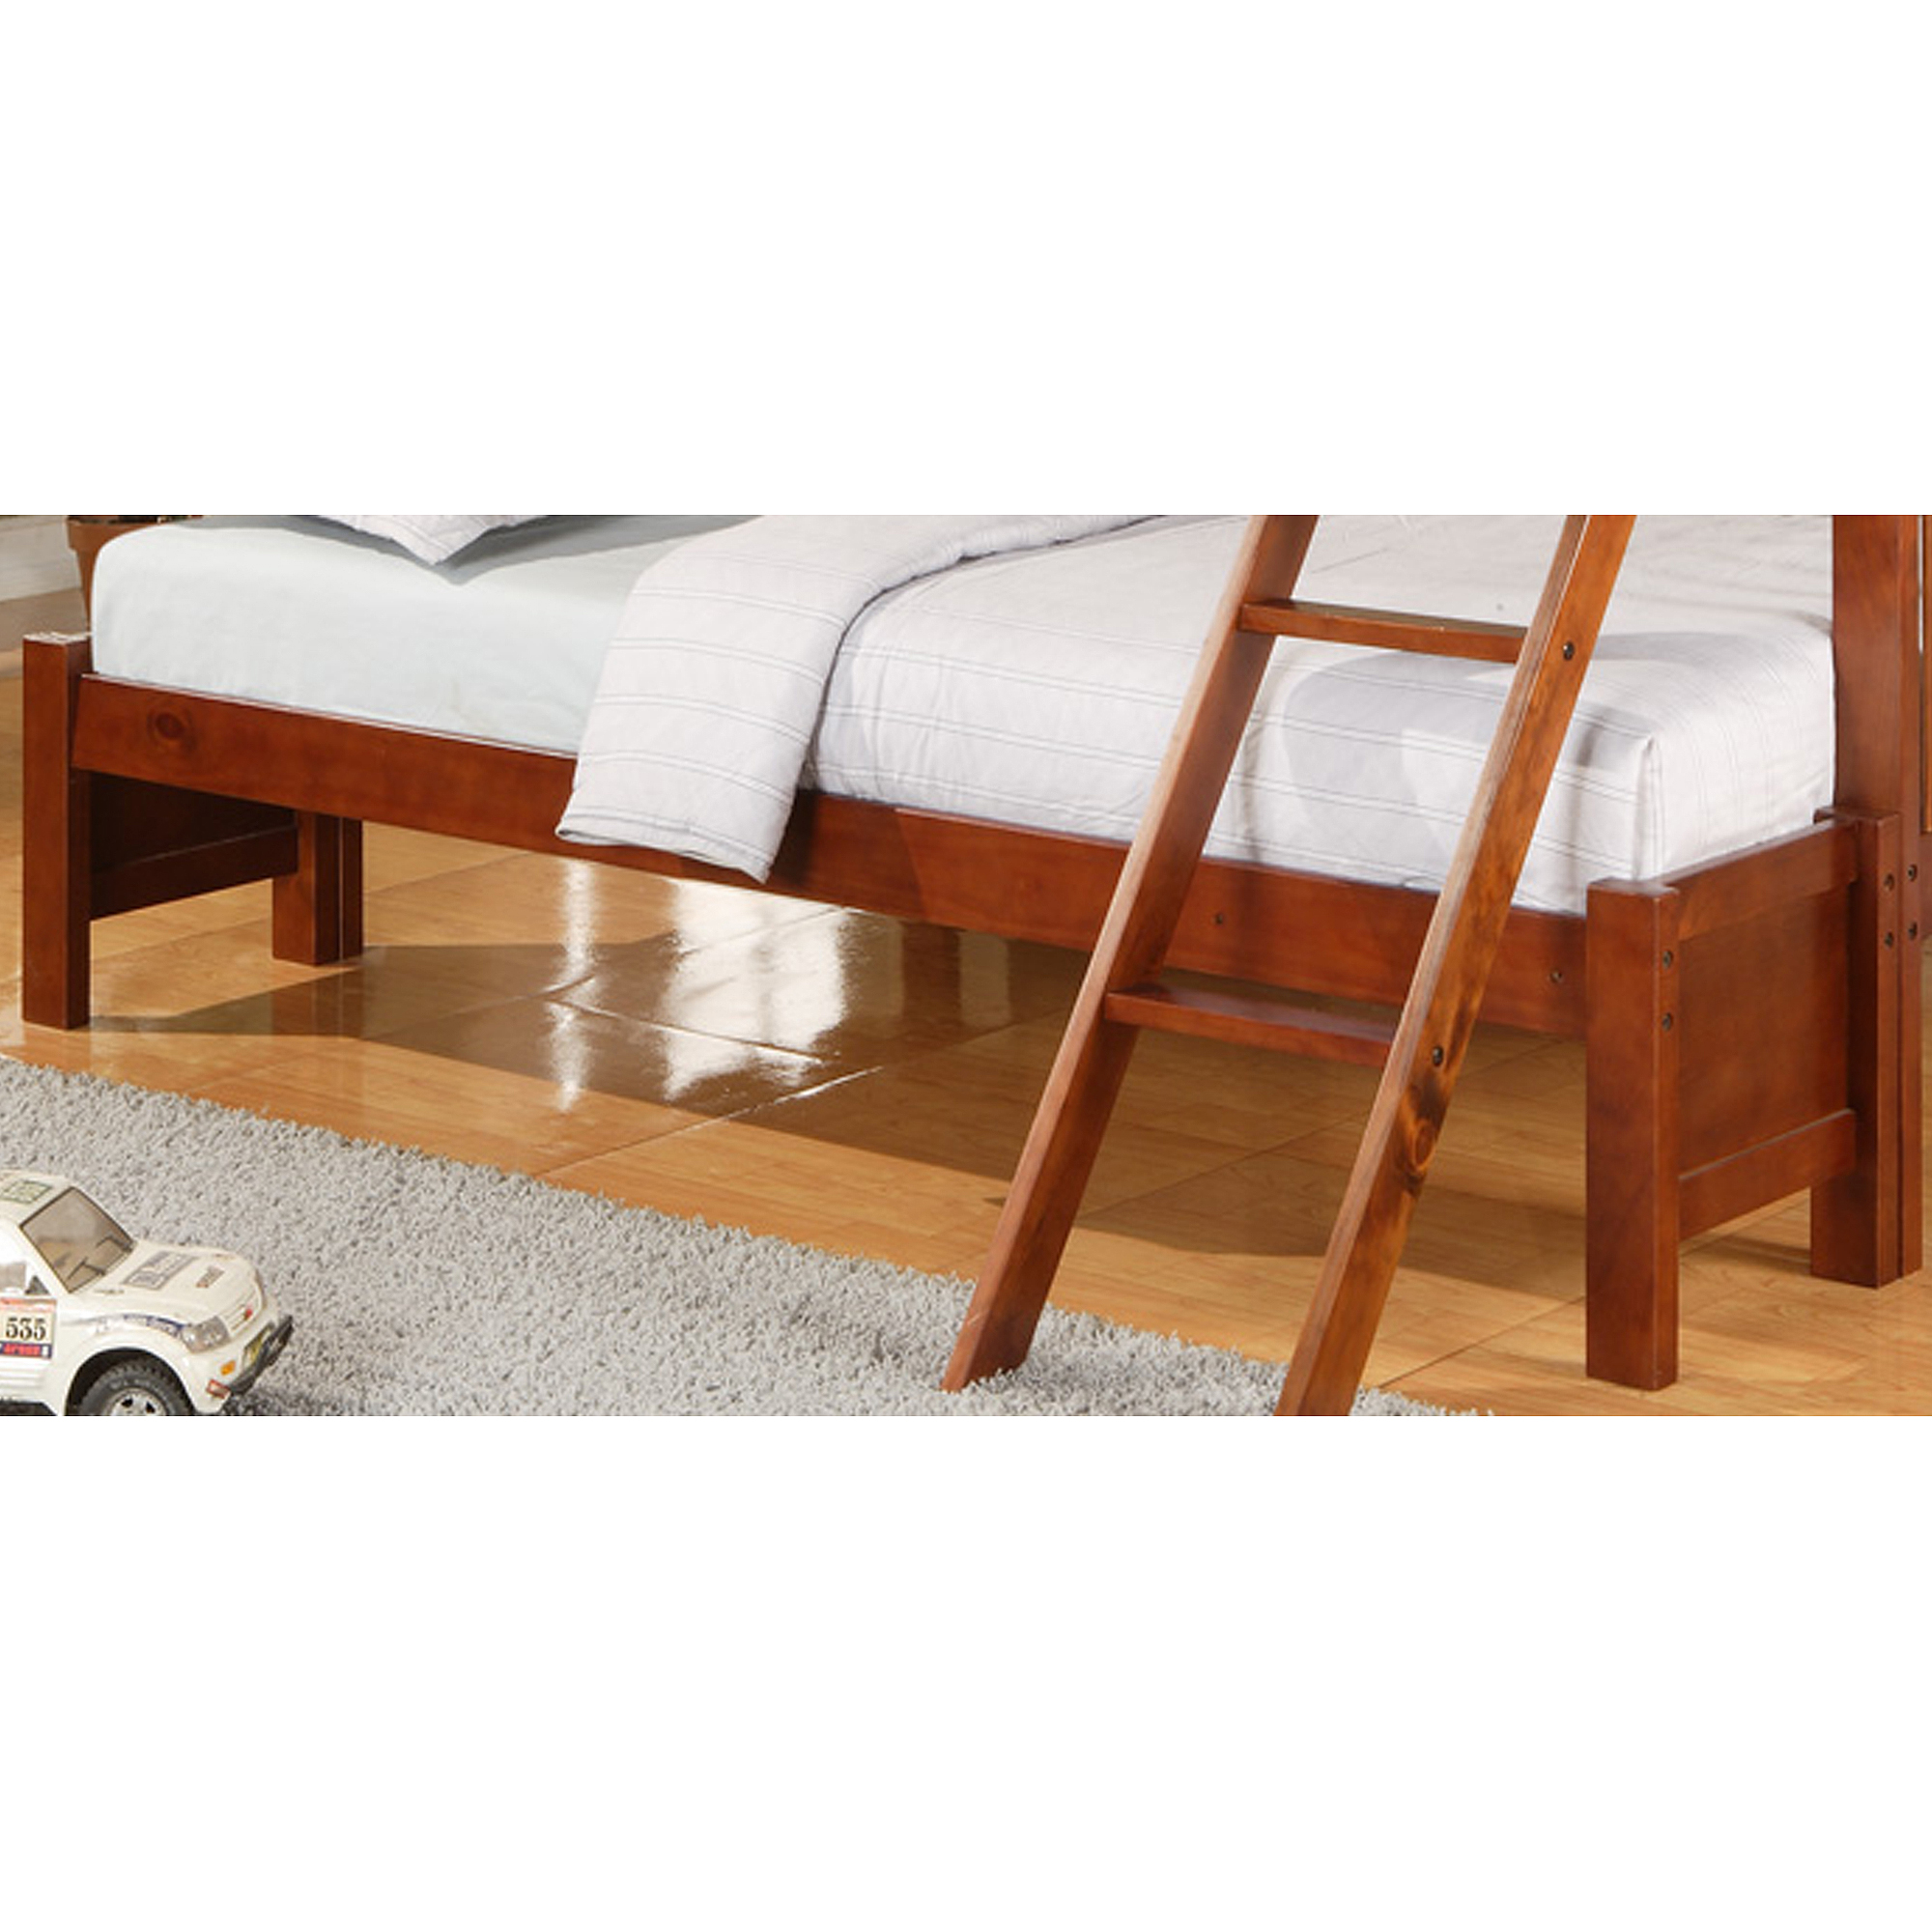 Elise Conversion Kit for Twin Over Full Bunk Bed, Mahogany by Top Line